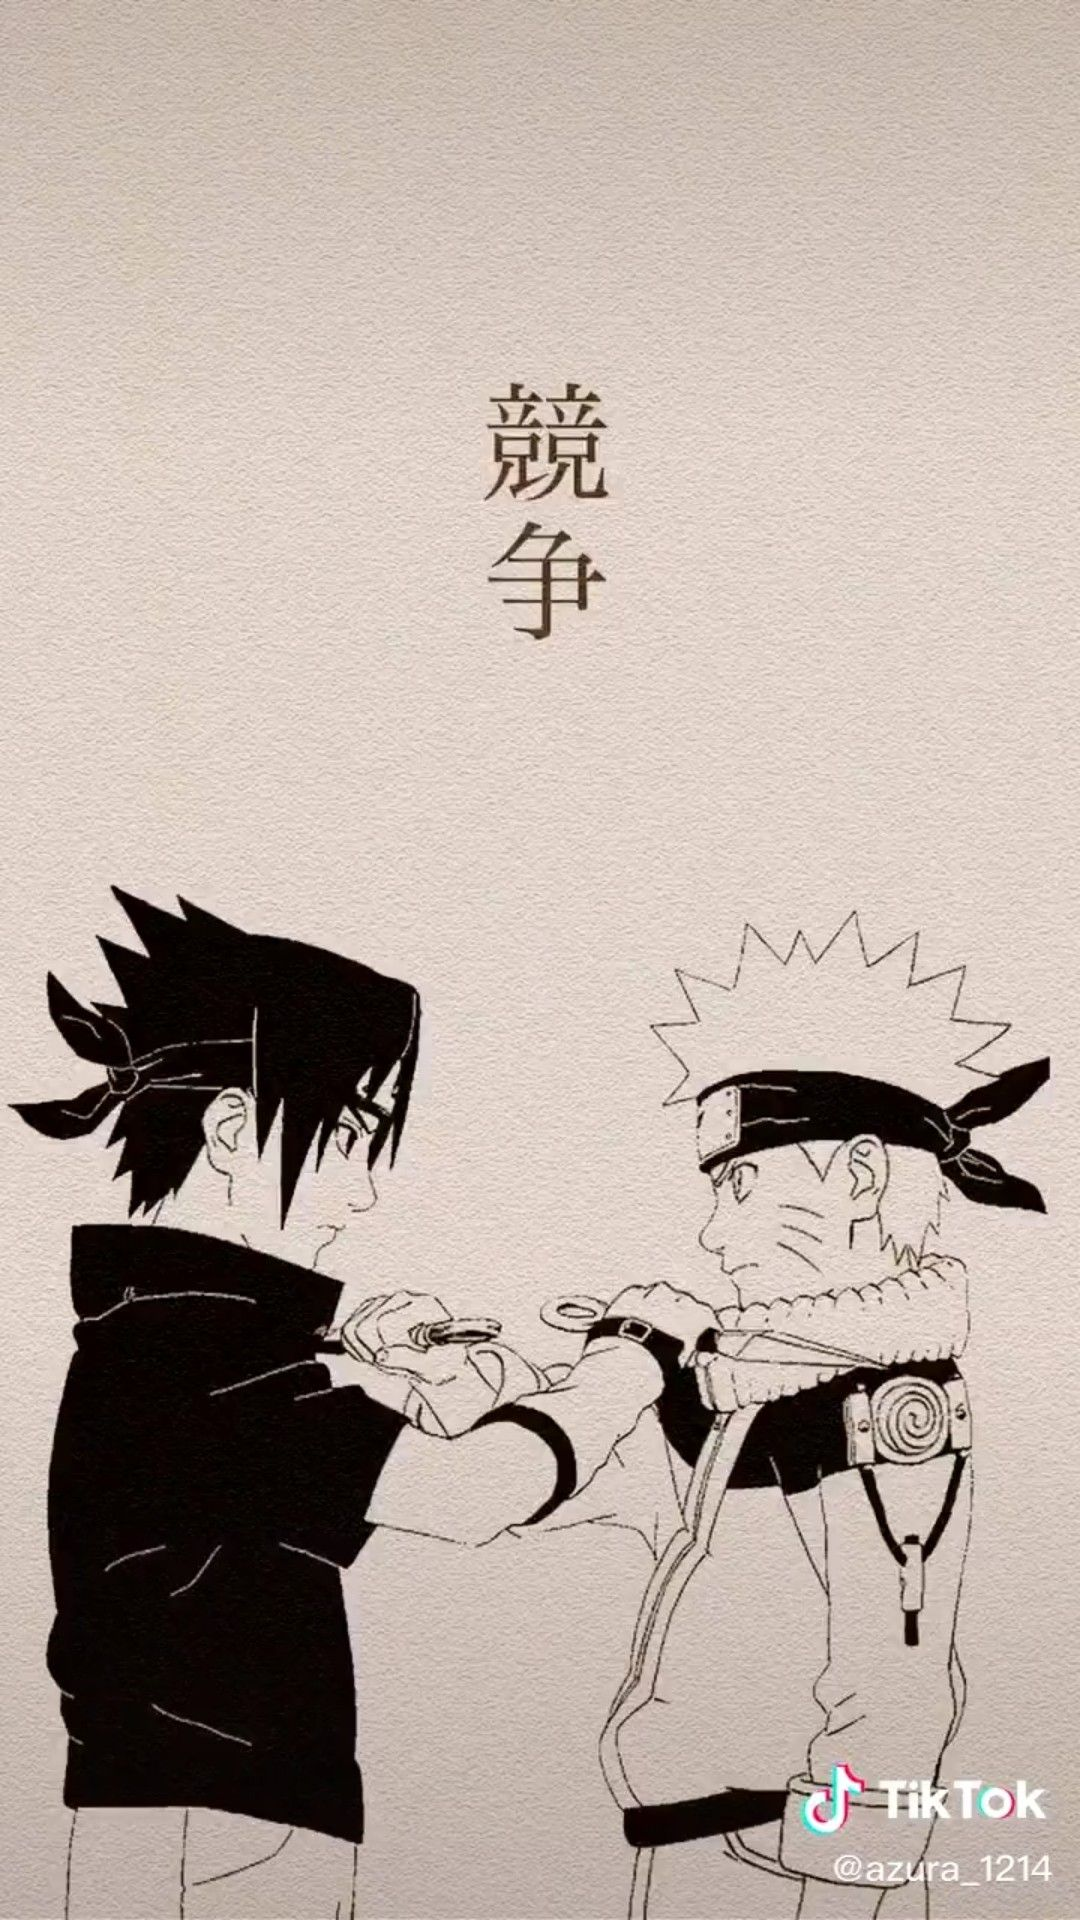 Pin By Ashley Honorat On Naruto Wallpapers Wallpaper Naruto Shippuden Naruto And Sasuke Wallpaper Naruto Wallpaper